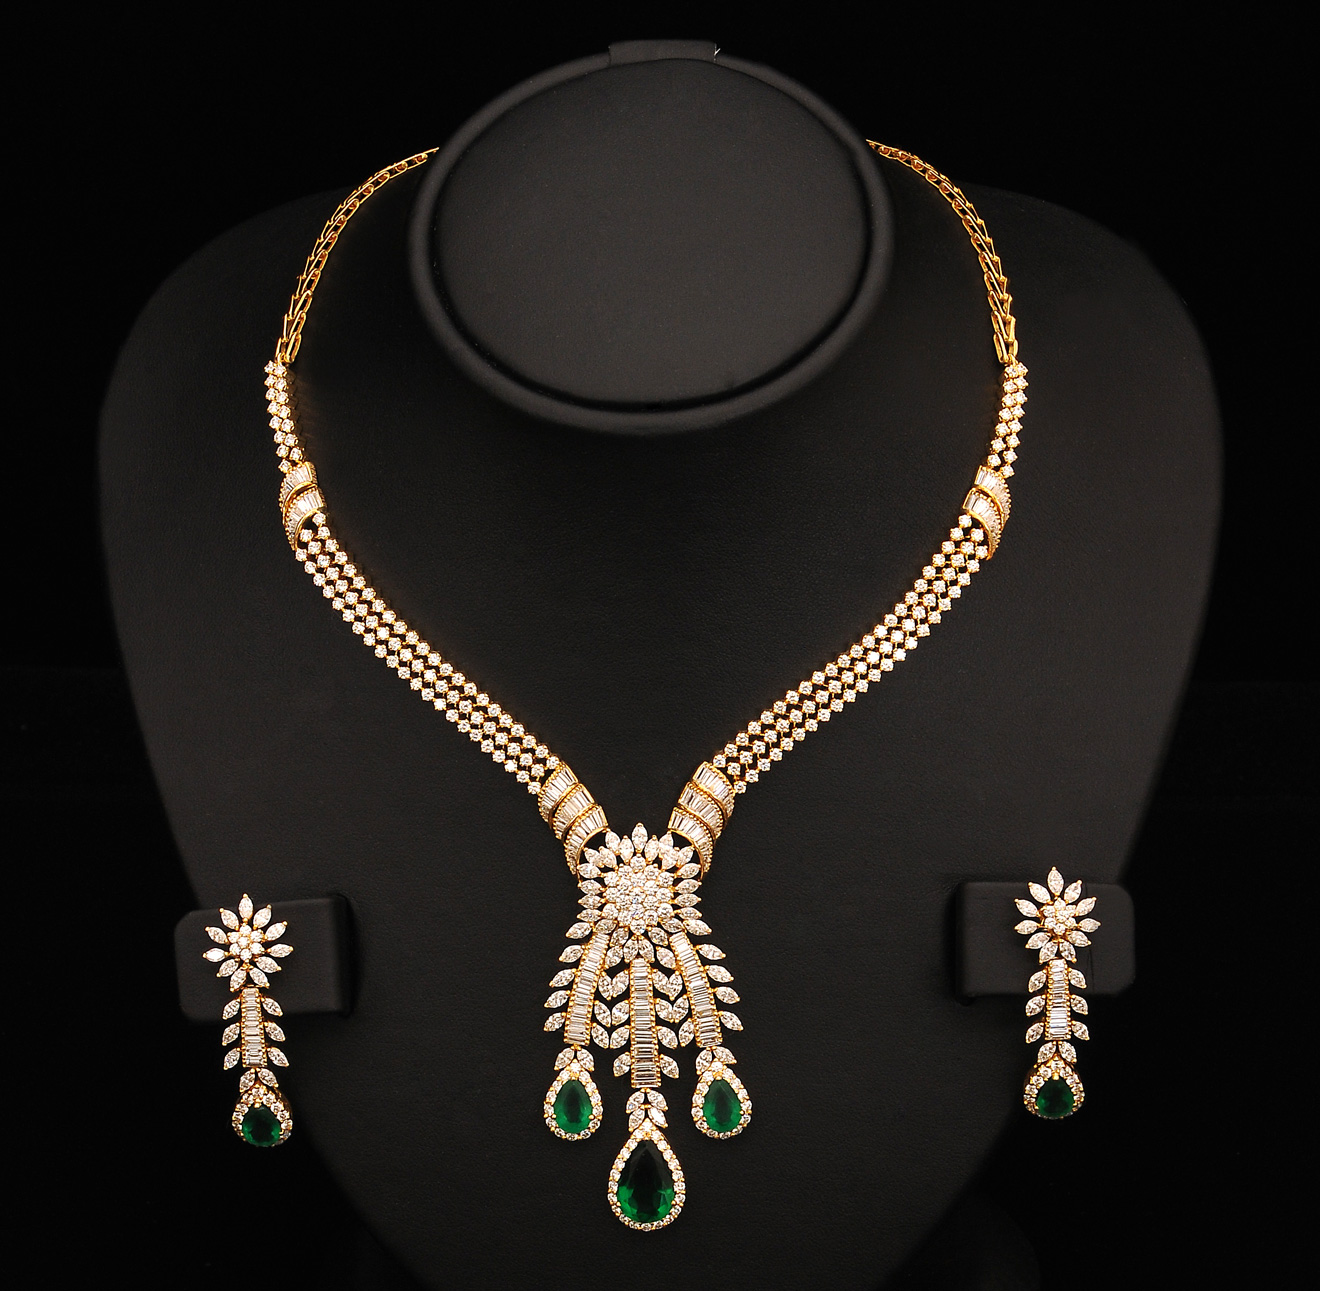 Indian Gold Jewellery From Websites For: Indiangoldesigns.com: Indian Diamond Bridal Necklace Sets